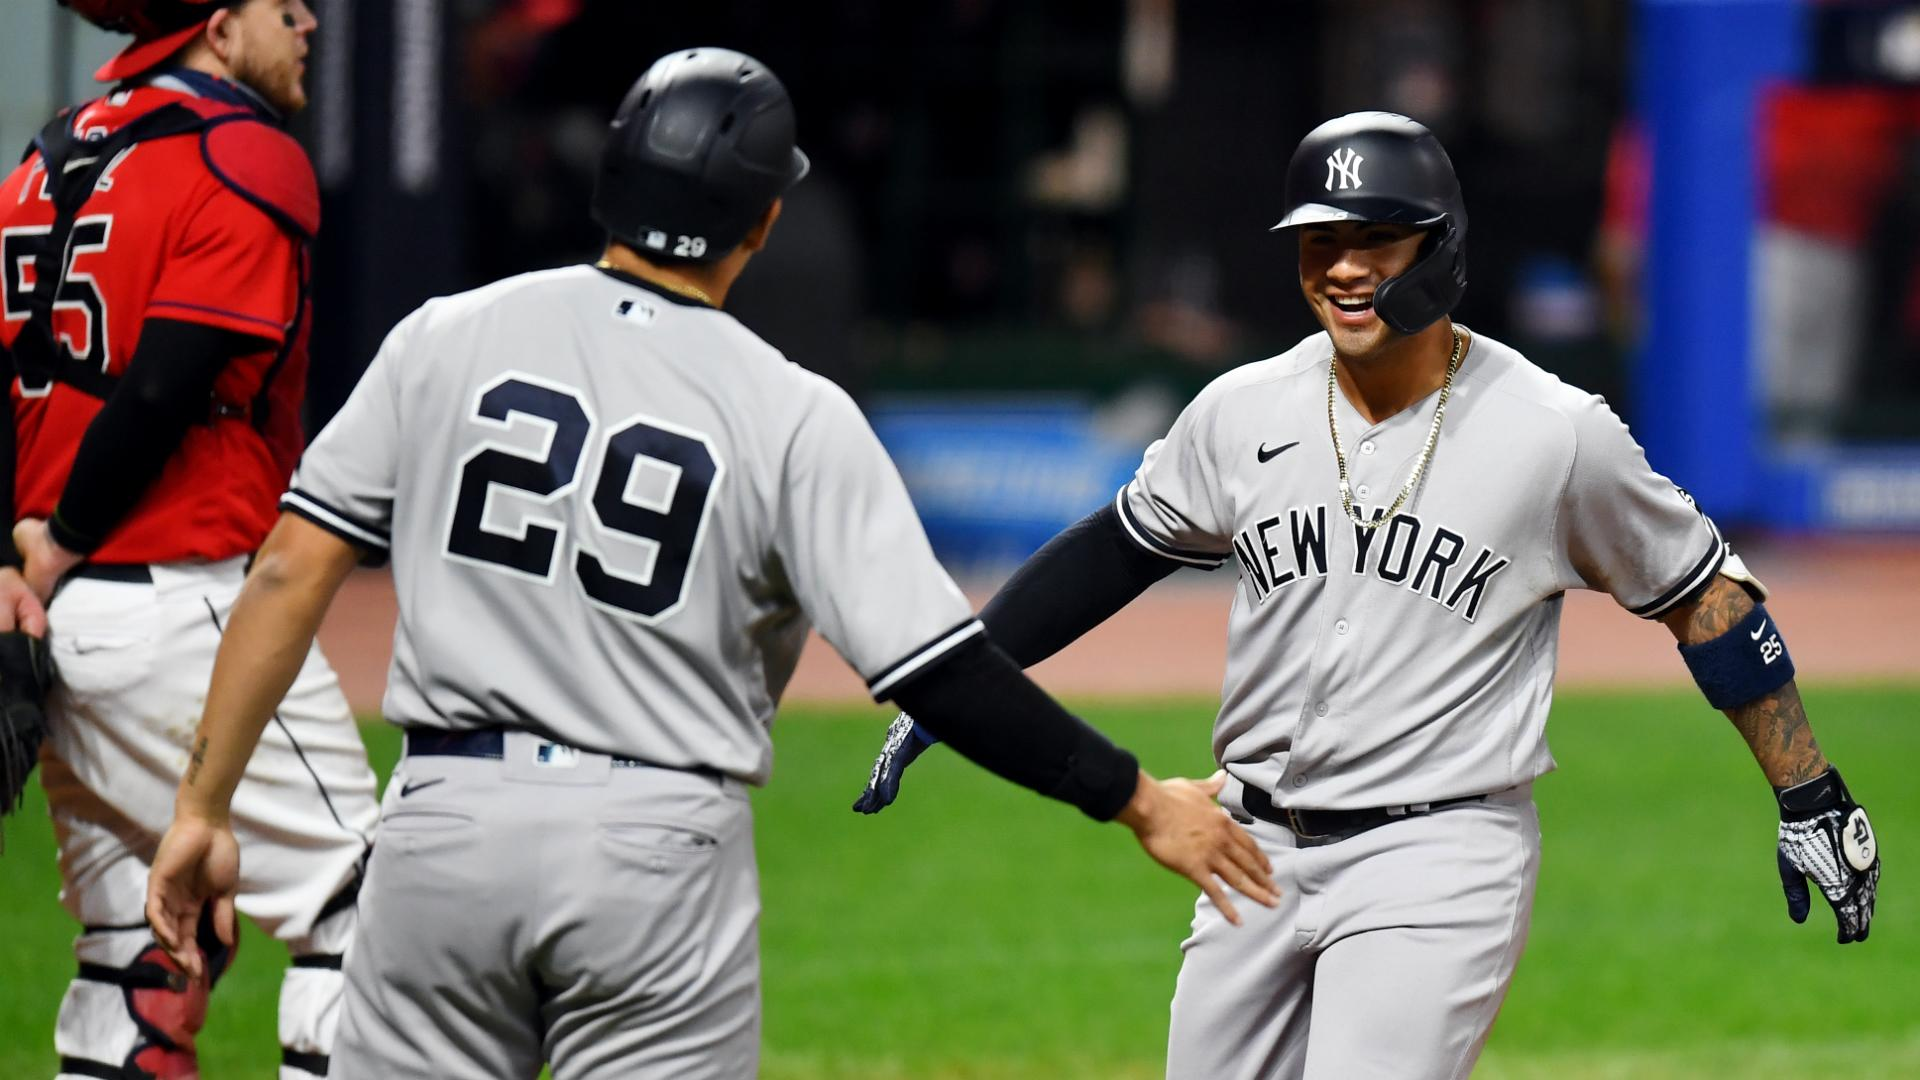 Yankees rout Indians in MLB playoffs opener, Astros cruise